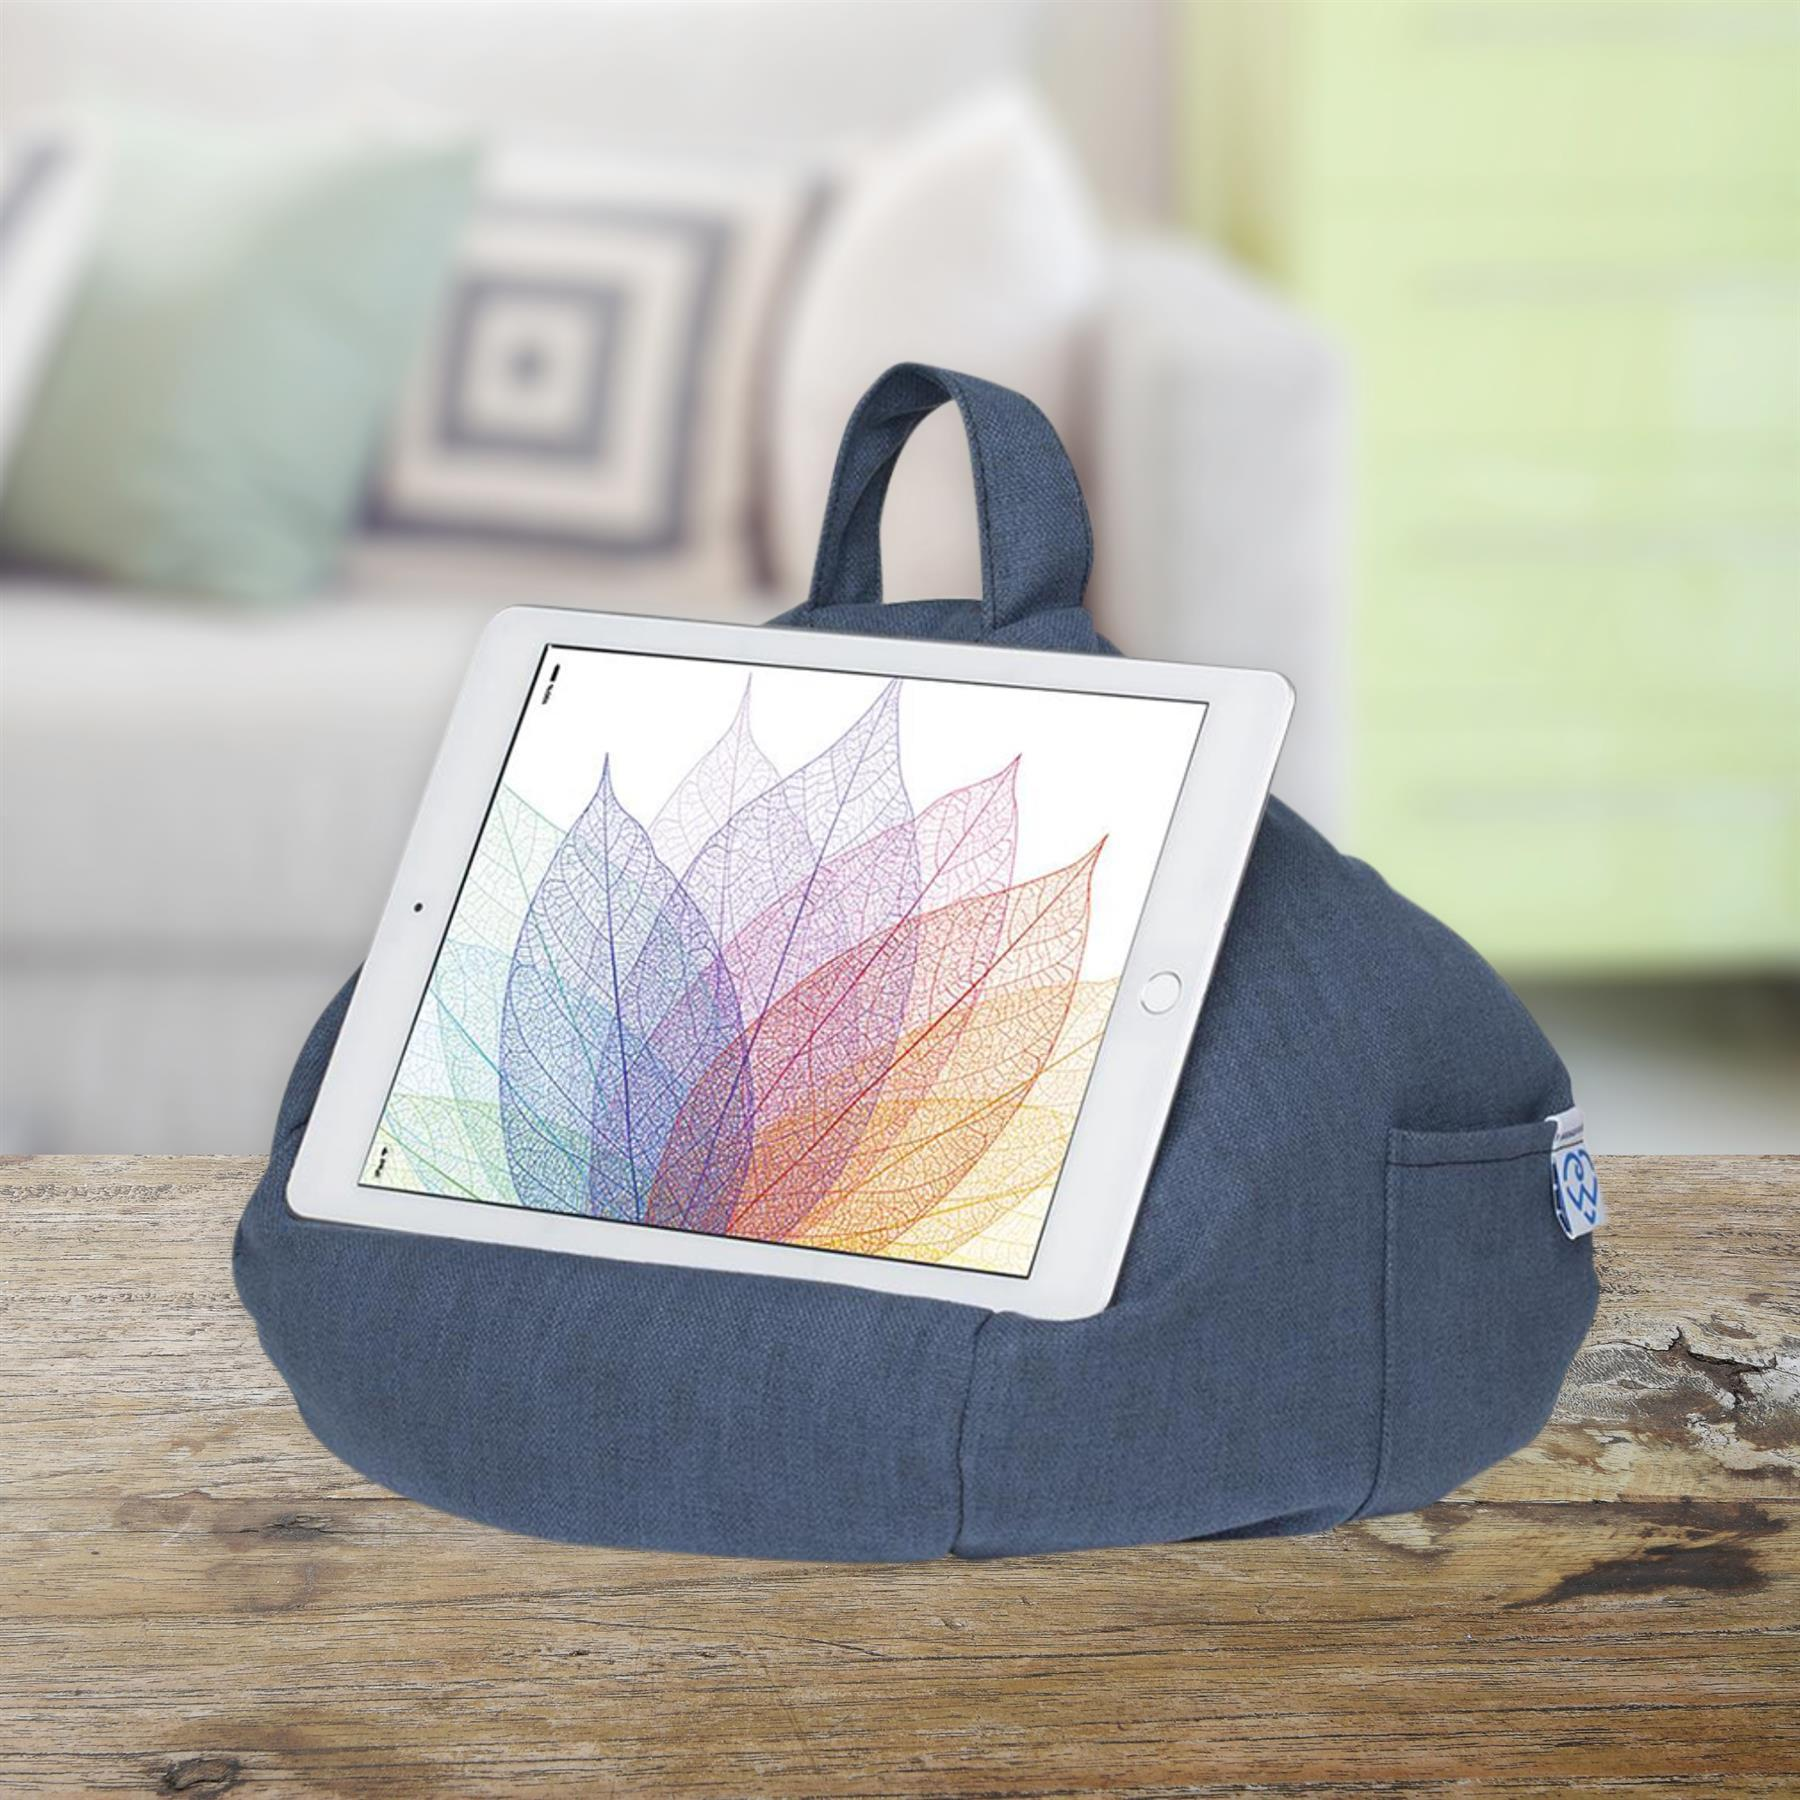 iBeani Tablet & iPad Cushion